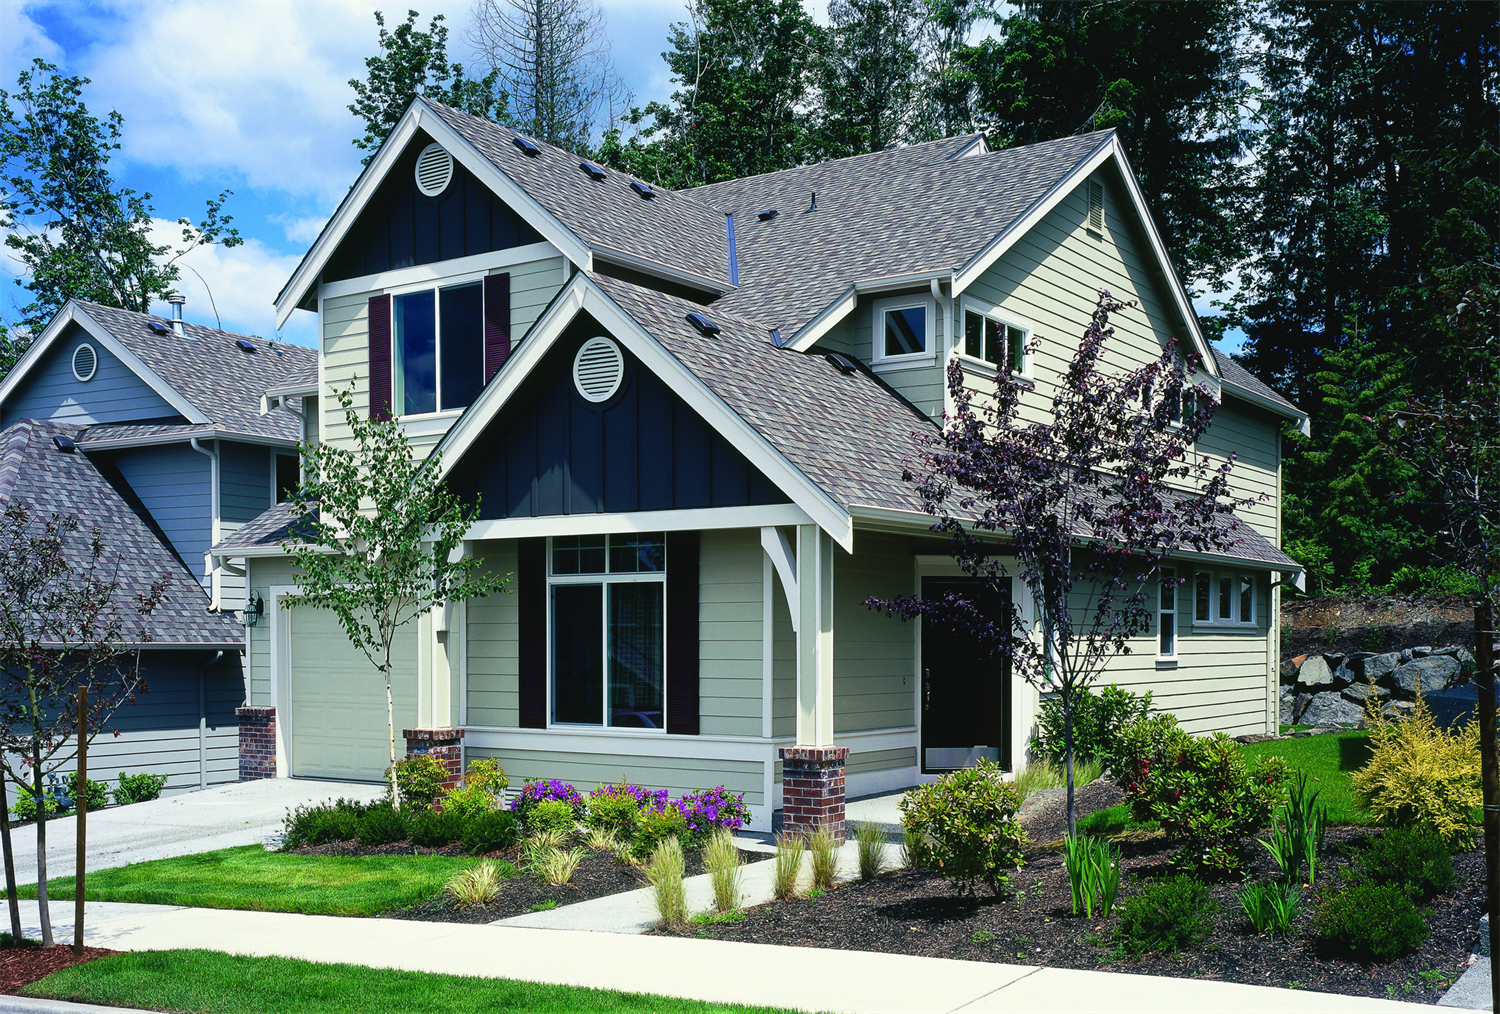 Pin siding products james hardie on pinterest for James hardie